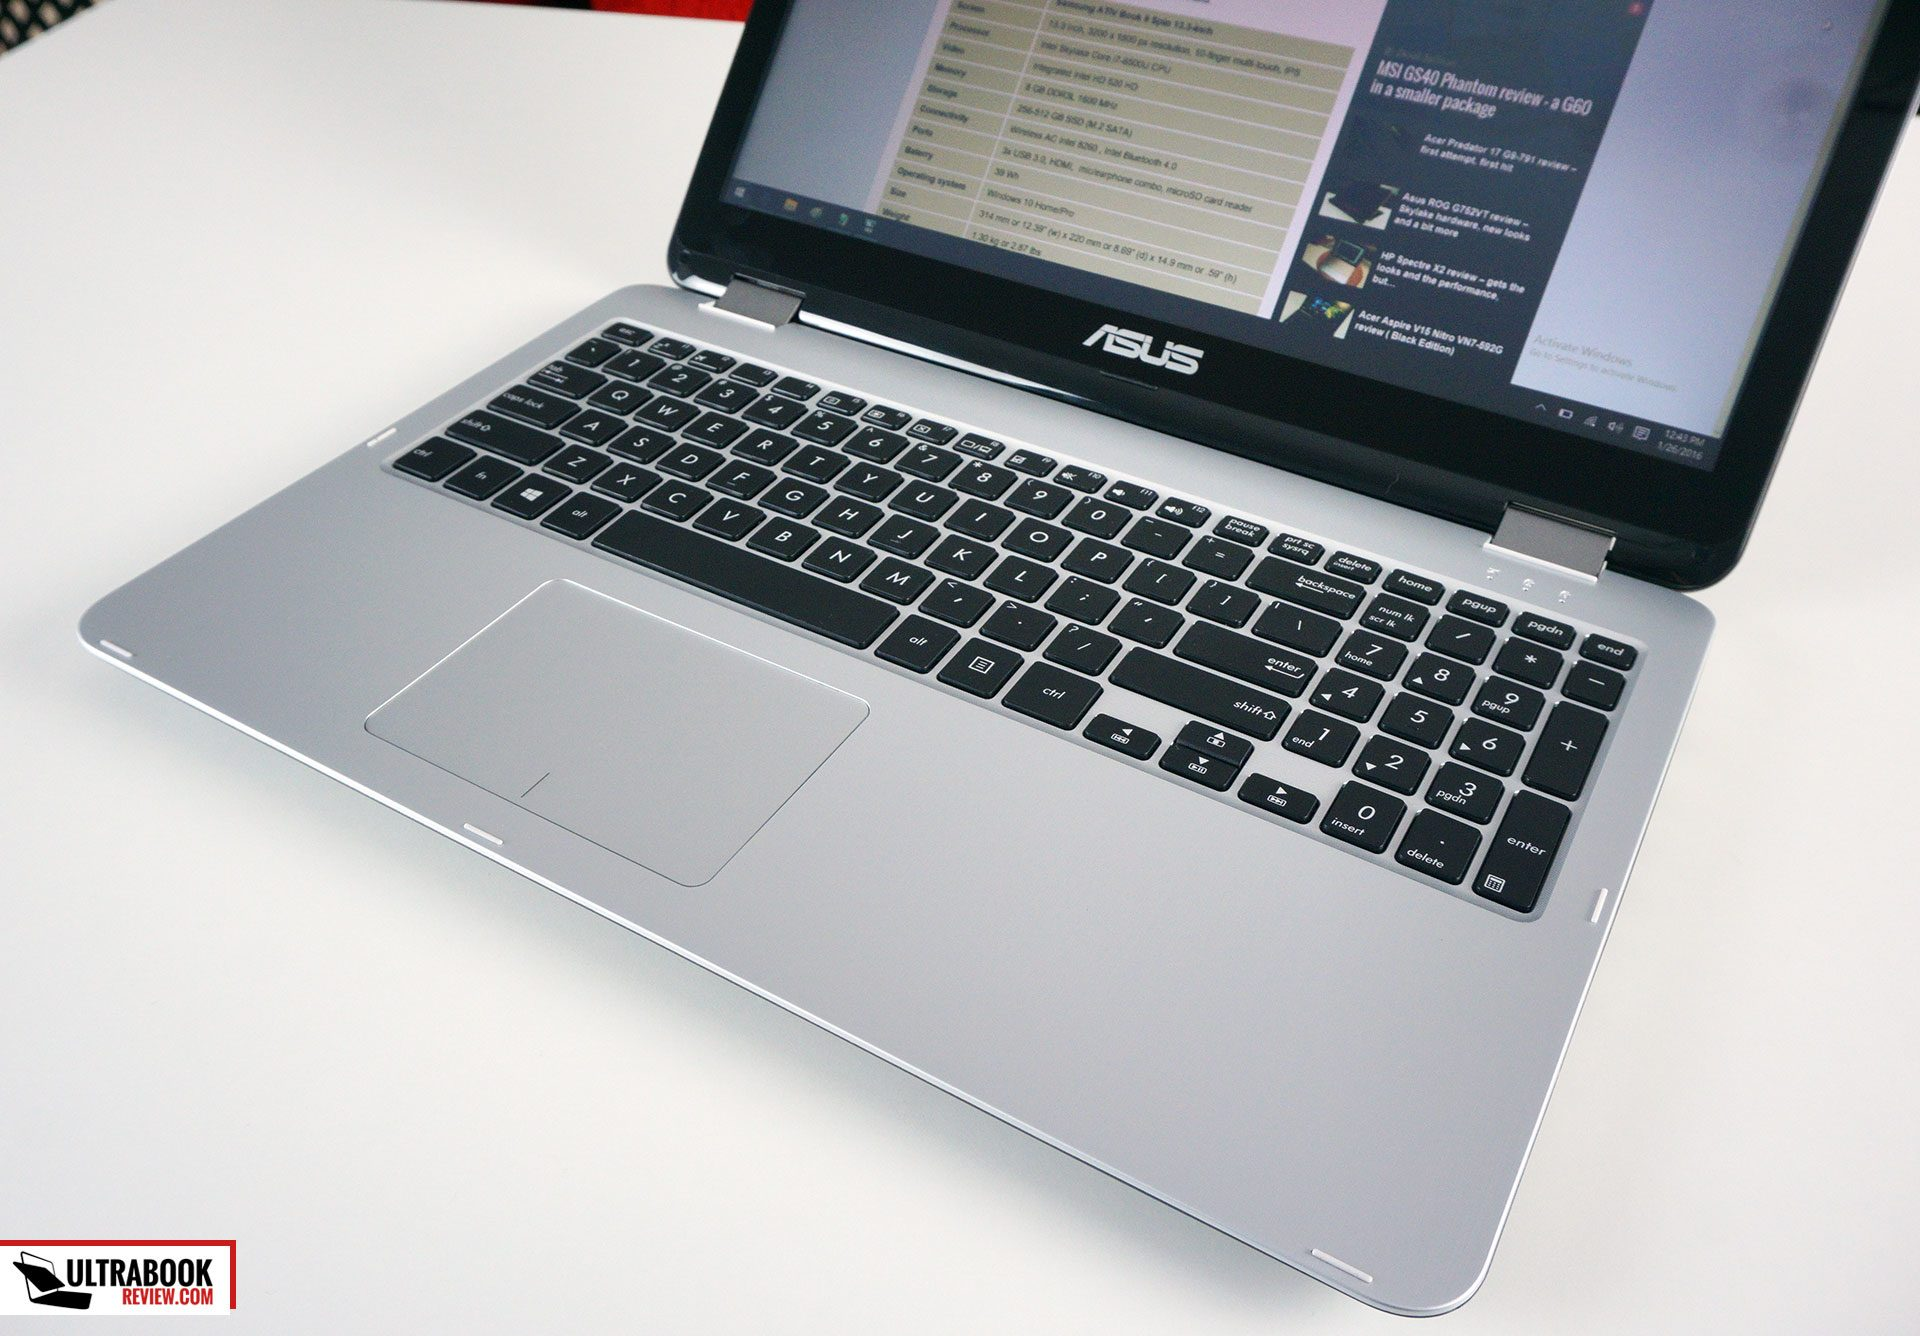 Asus Vivobook TP501UA review - 15-inch convertible notebook